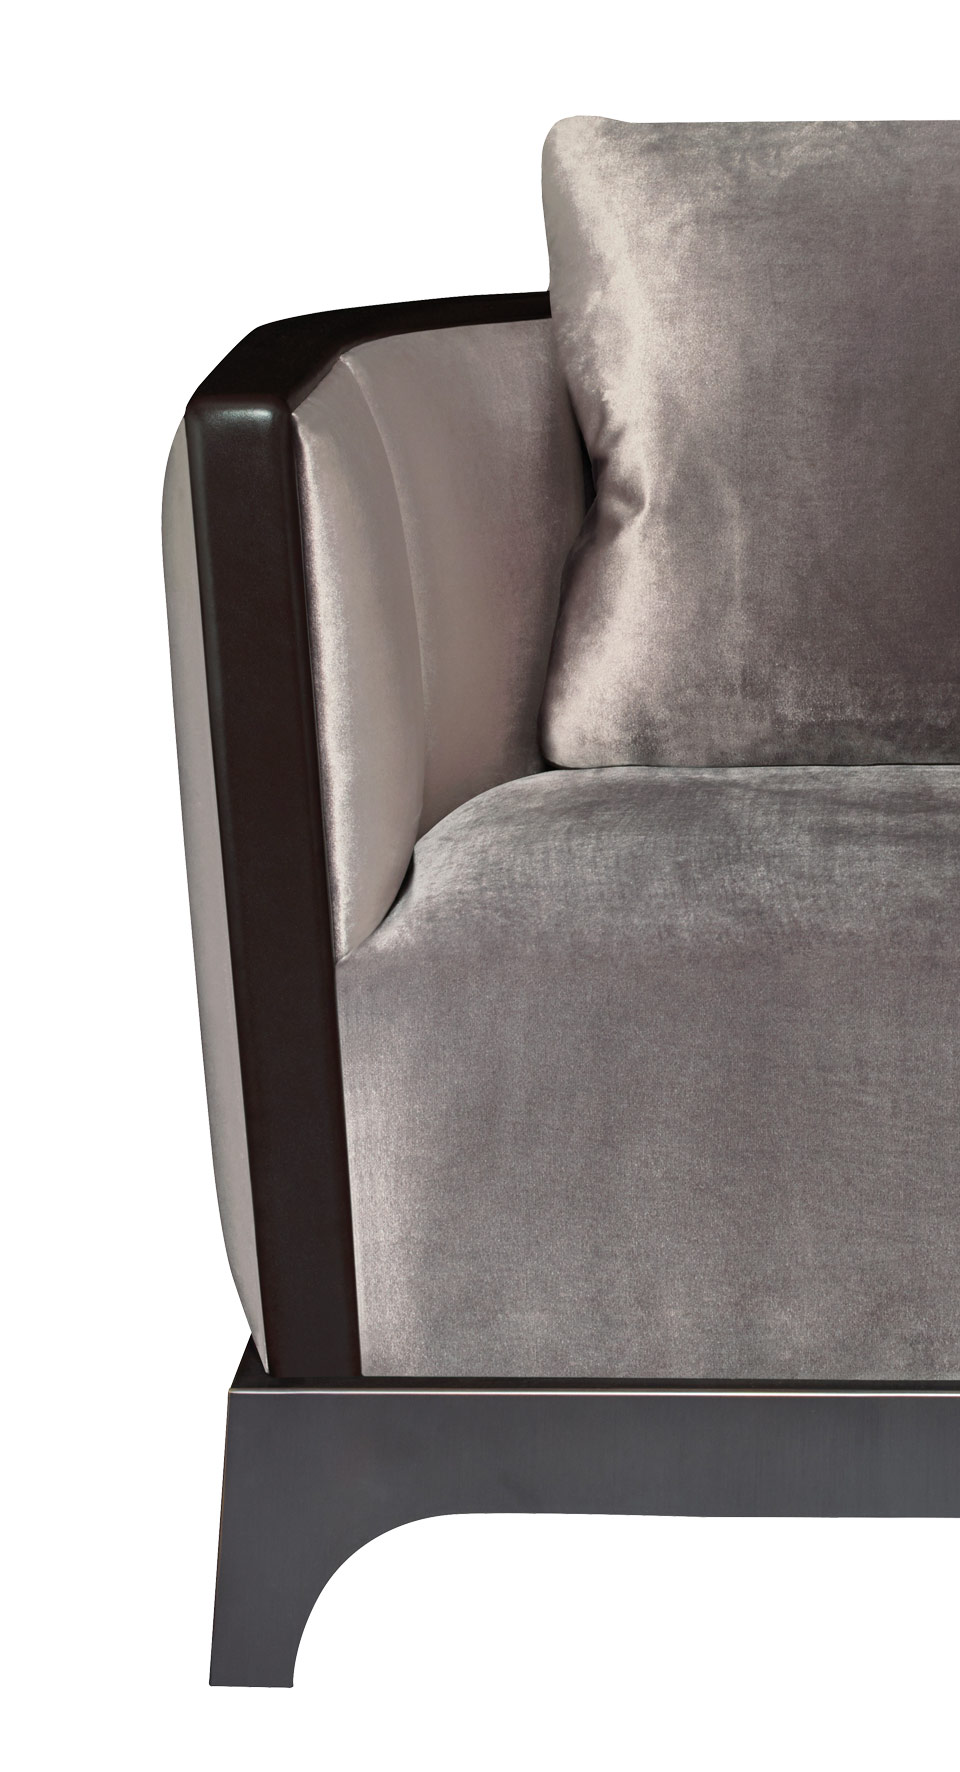 Detail of Grosvenor, a wooden armchair with fabric covering and leather details, from Promemoria's The London Collection | Promemoria